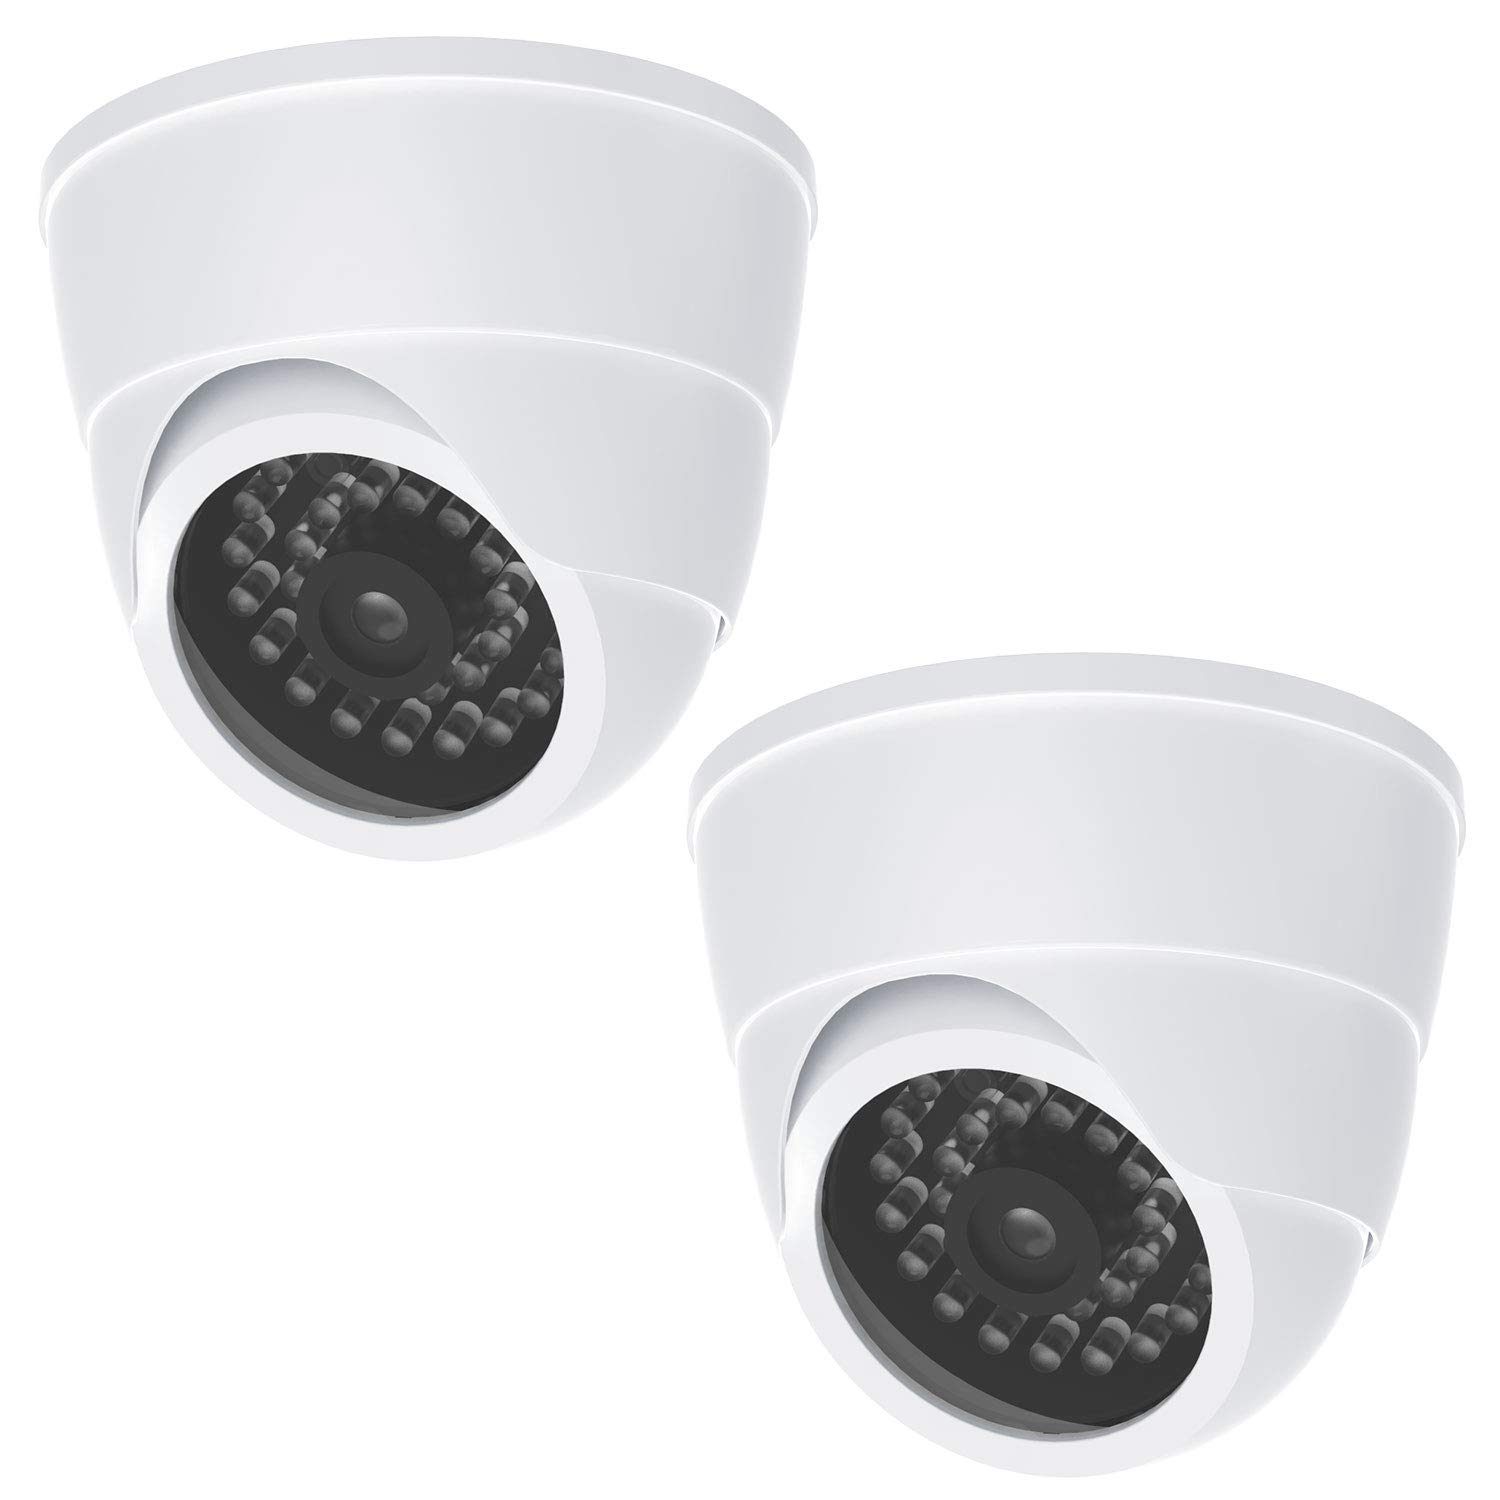 Dummy Fake Security CCTV Dome Camera 1 Flashing Red LED Light with Security Alert Sticker Decals (SDW-2B), 2 Pack, White